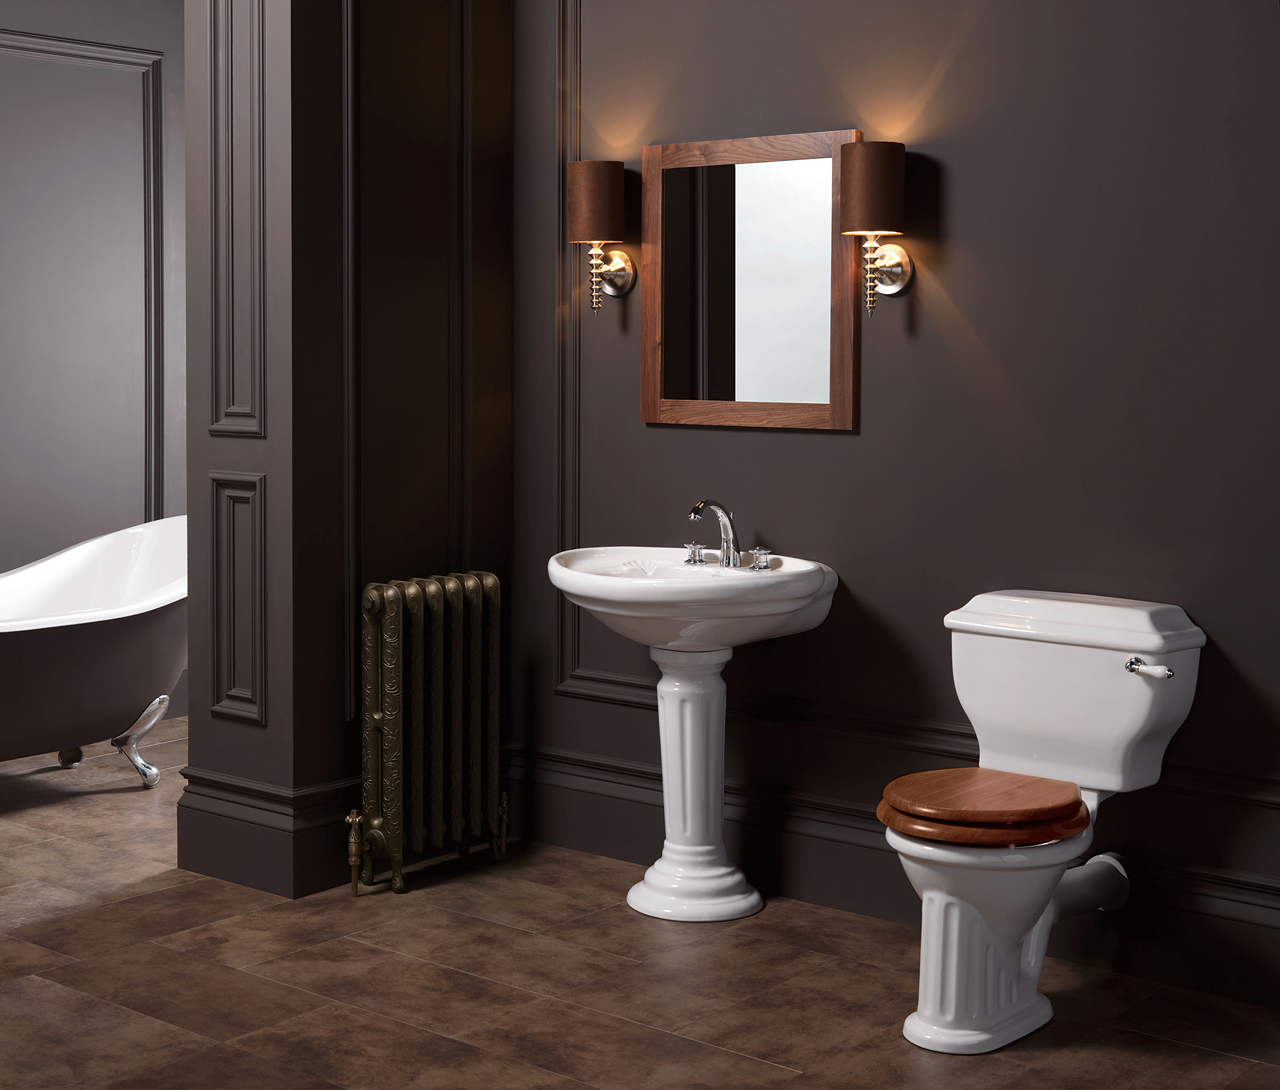 Classic Bathrooms: Imperial Bathrooms - Windsor-Main-Room+Radiator-Retouch